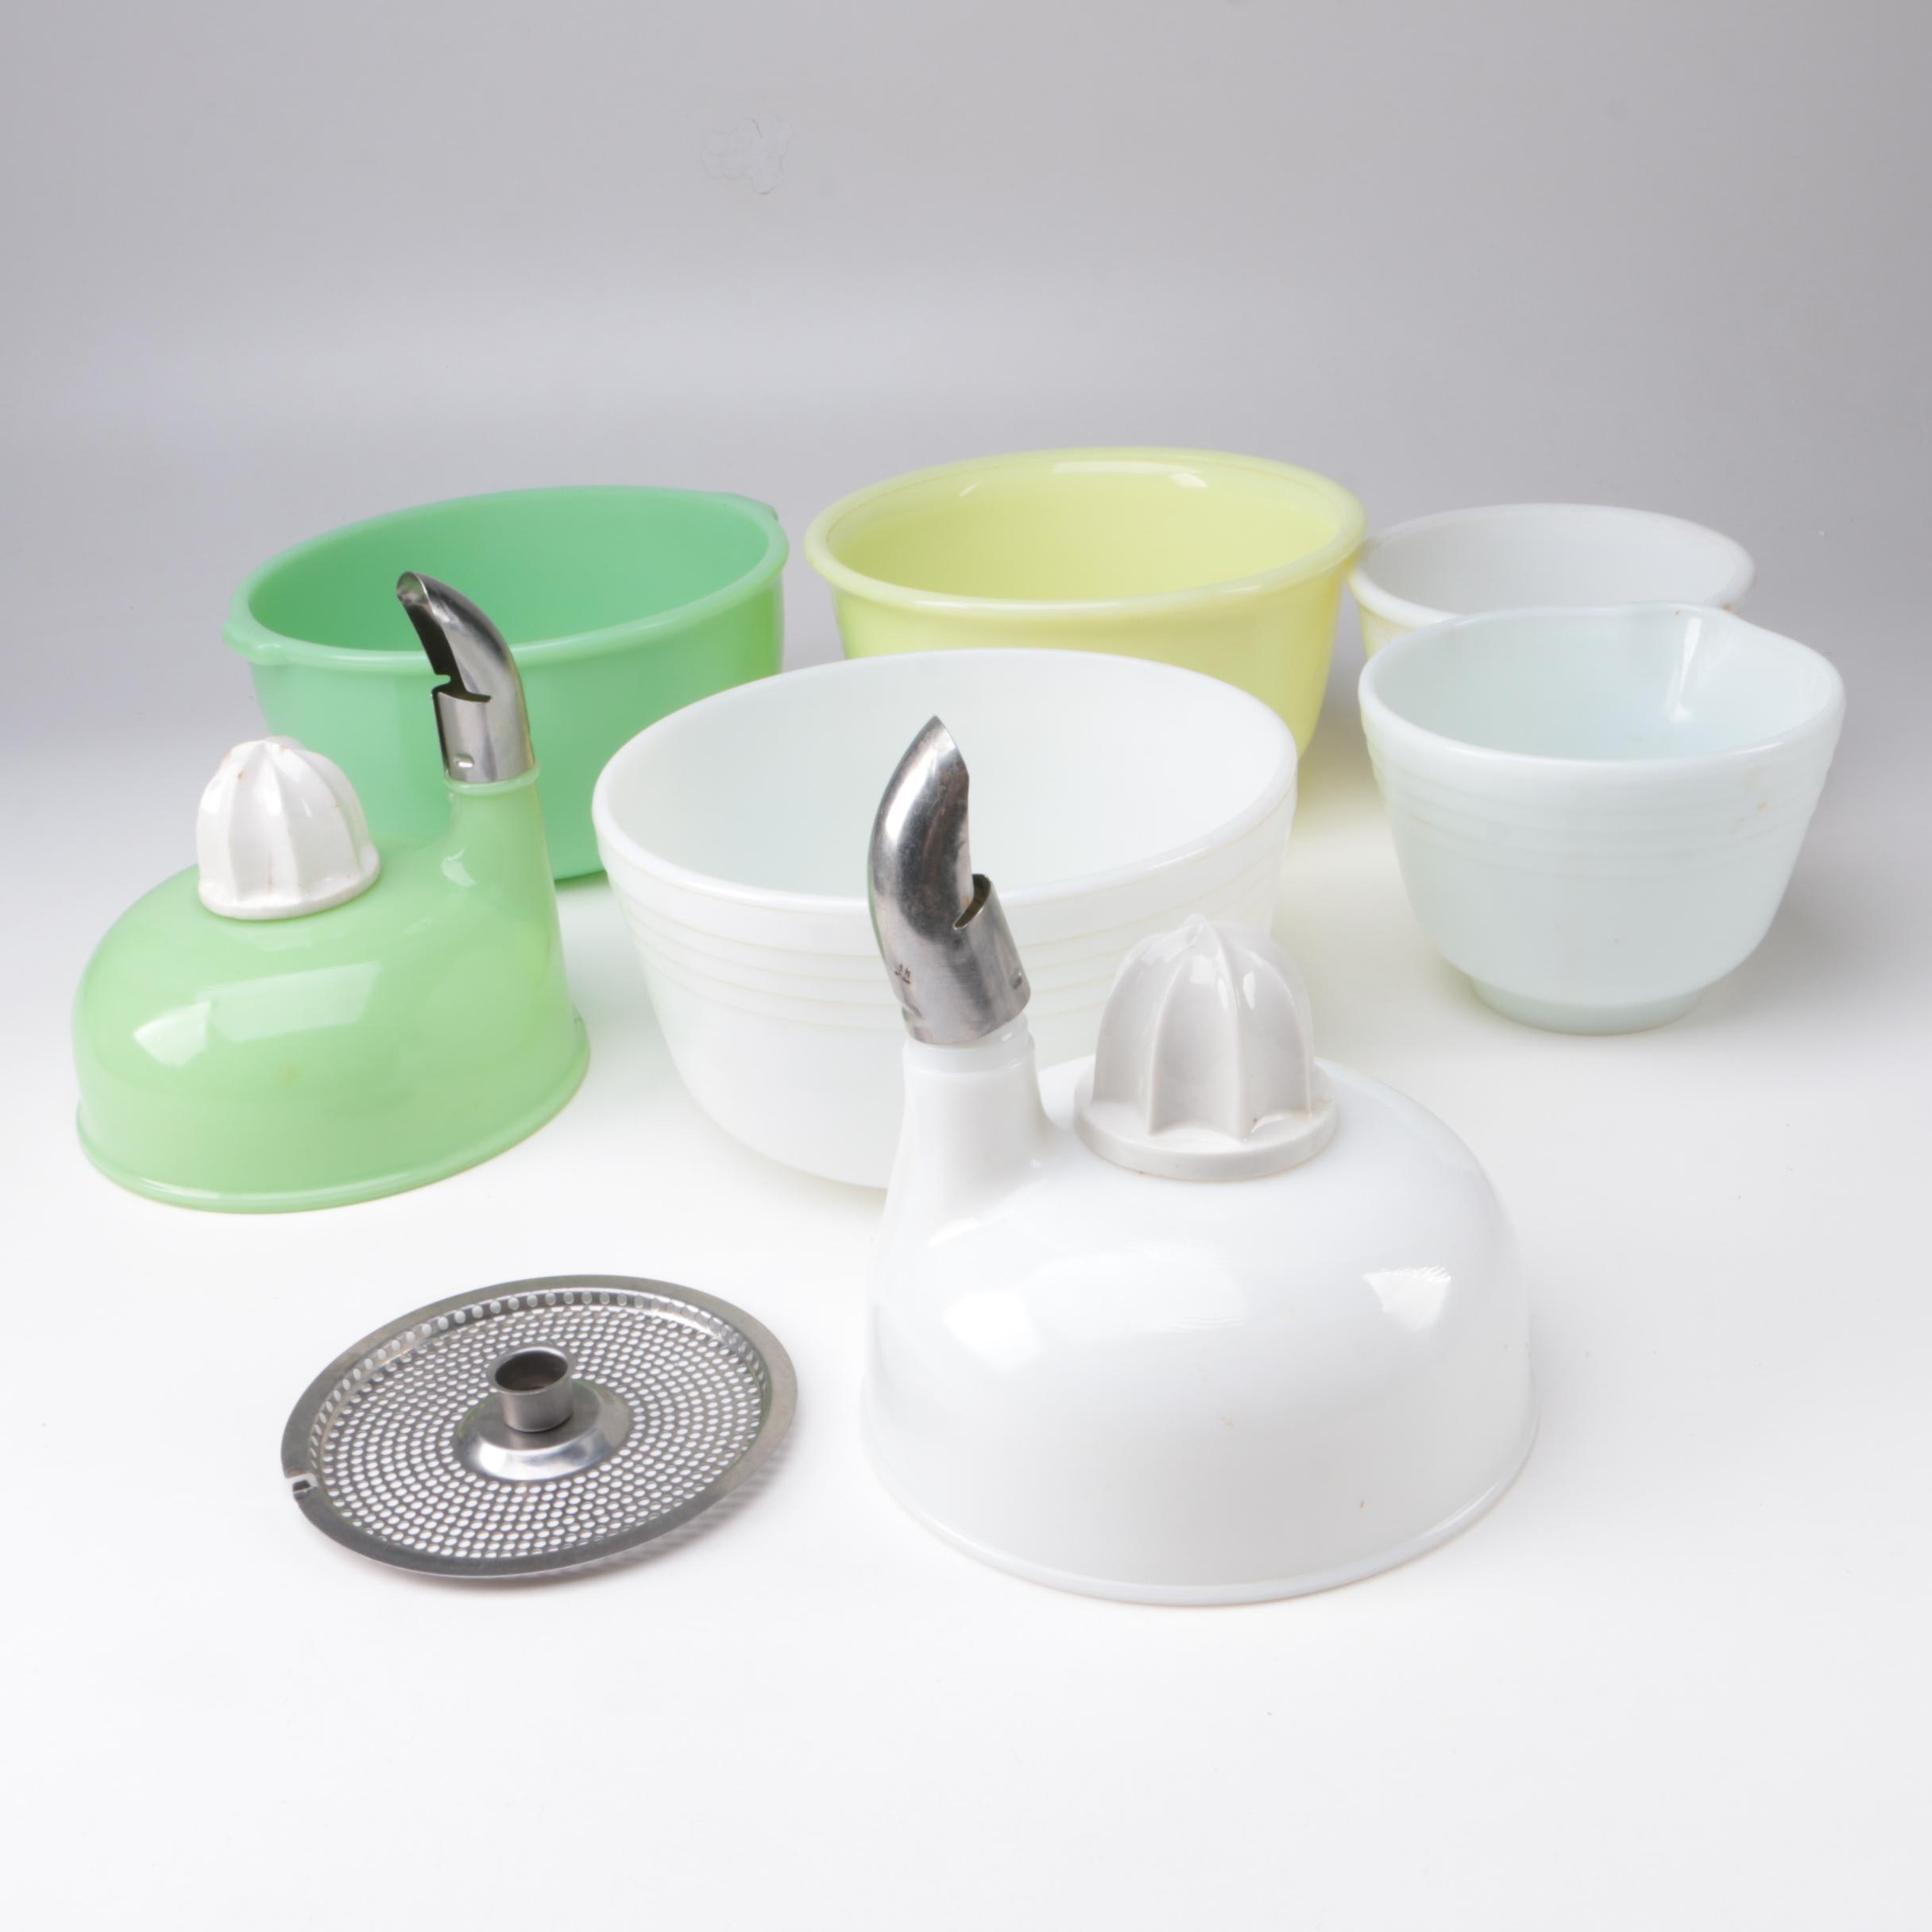 Vintage Mixing Bowls with Juicing Attachments Featuring Pyrex